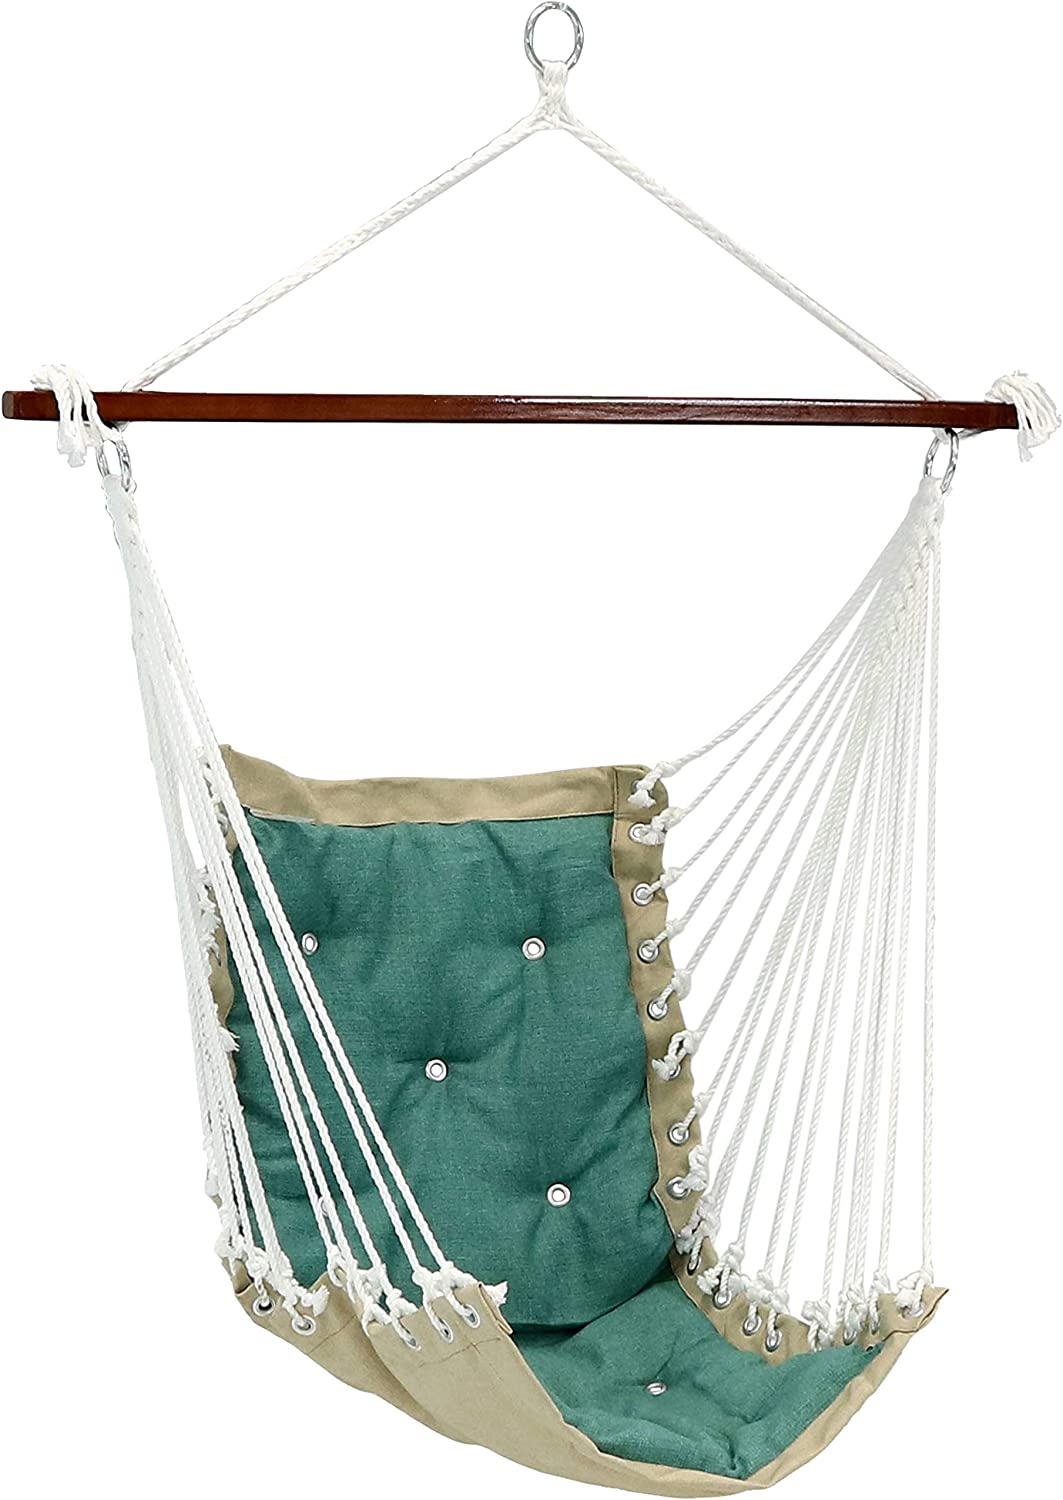 Sunnydaze Tufted Victorian Hammock Chair Swing, Indoor or Outdoor Hanging Seat, Sturdy 300 Pound Weight Capacity, Sea Grass